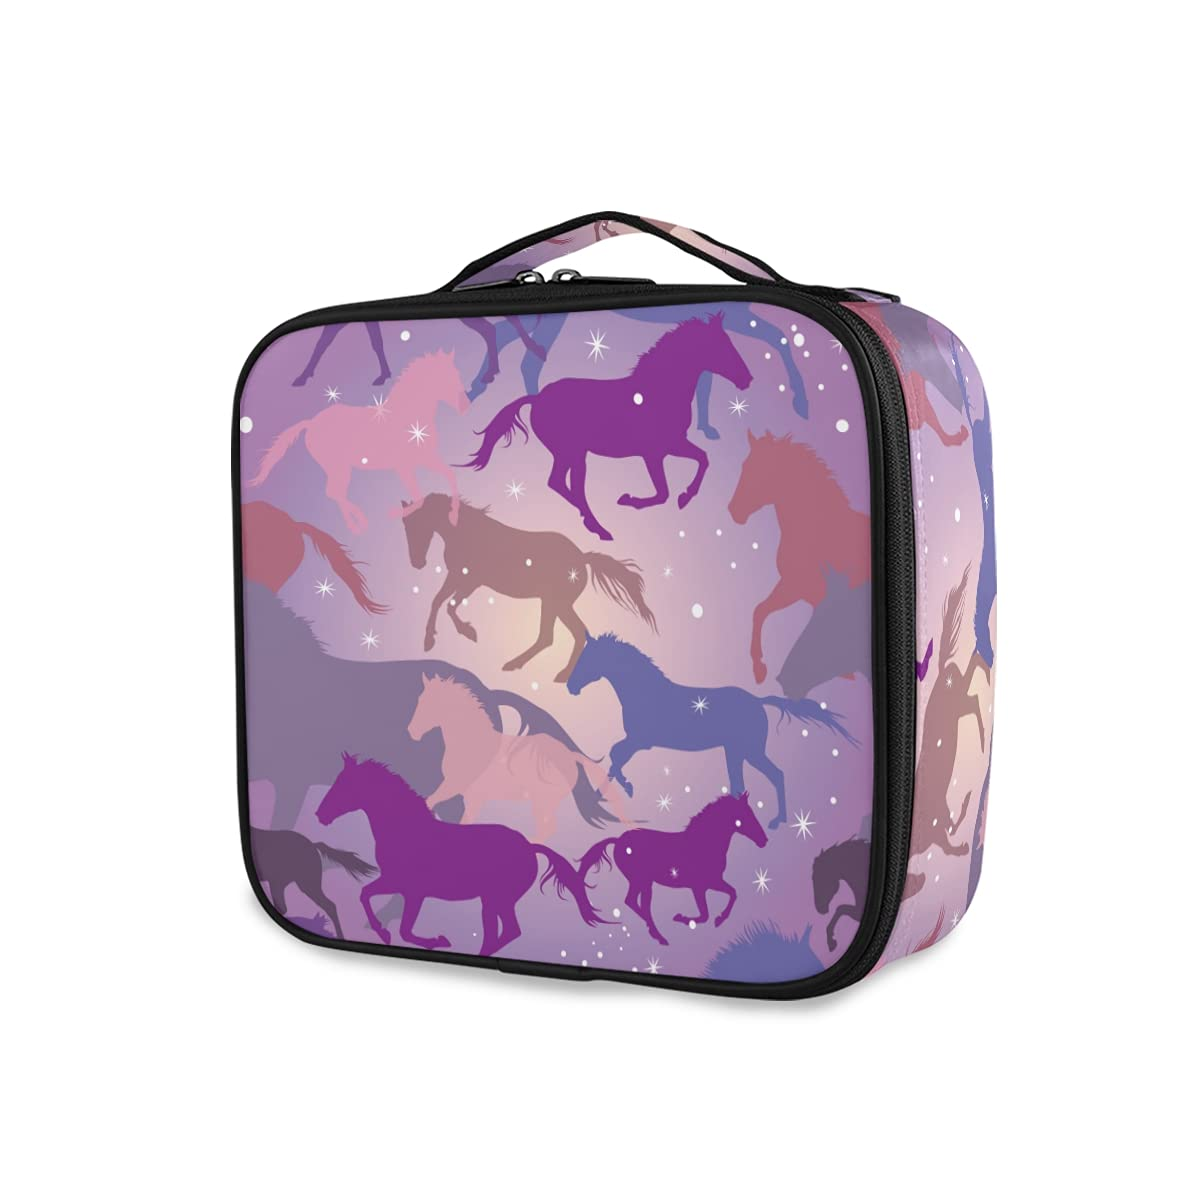 OTVEE Colorful Horse Limited Special Price Stars Cheap mail order specialty store Makeup Travel Large Bag Cosmetic